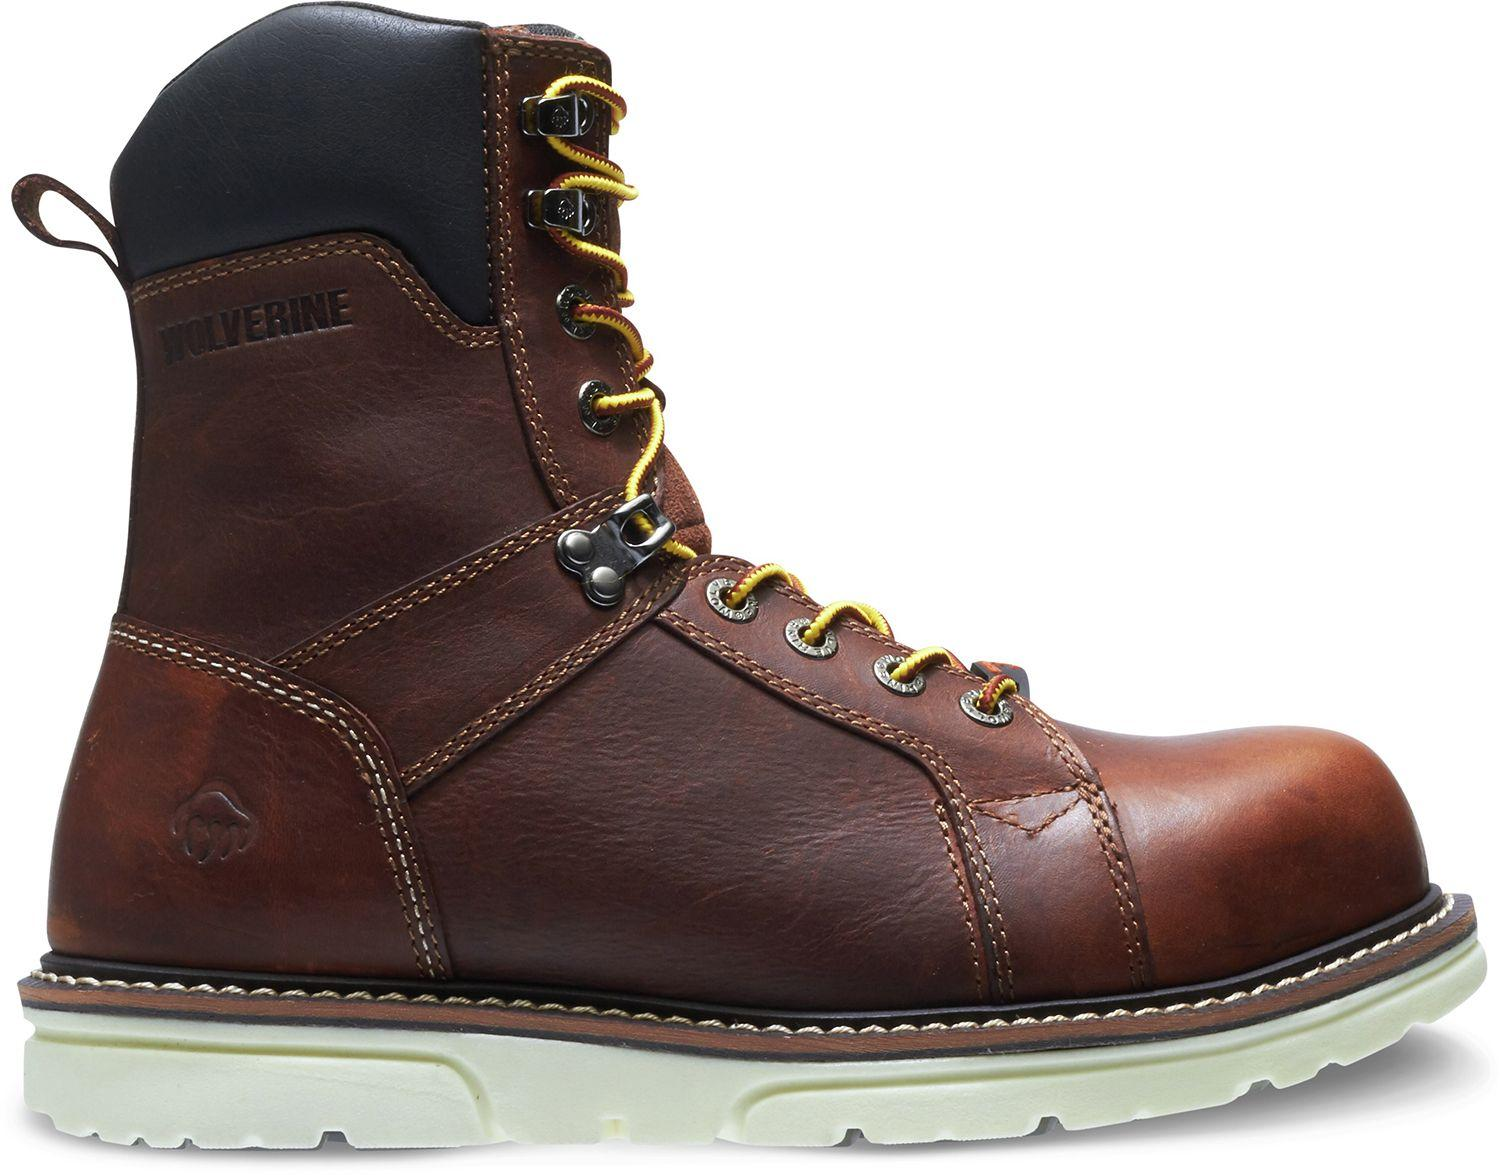 2b7e58e3323 Lyst - Wolverine I-90 Durashocks Wedge 8'' Work Boots in Brown for Men